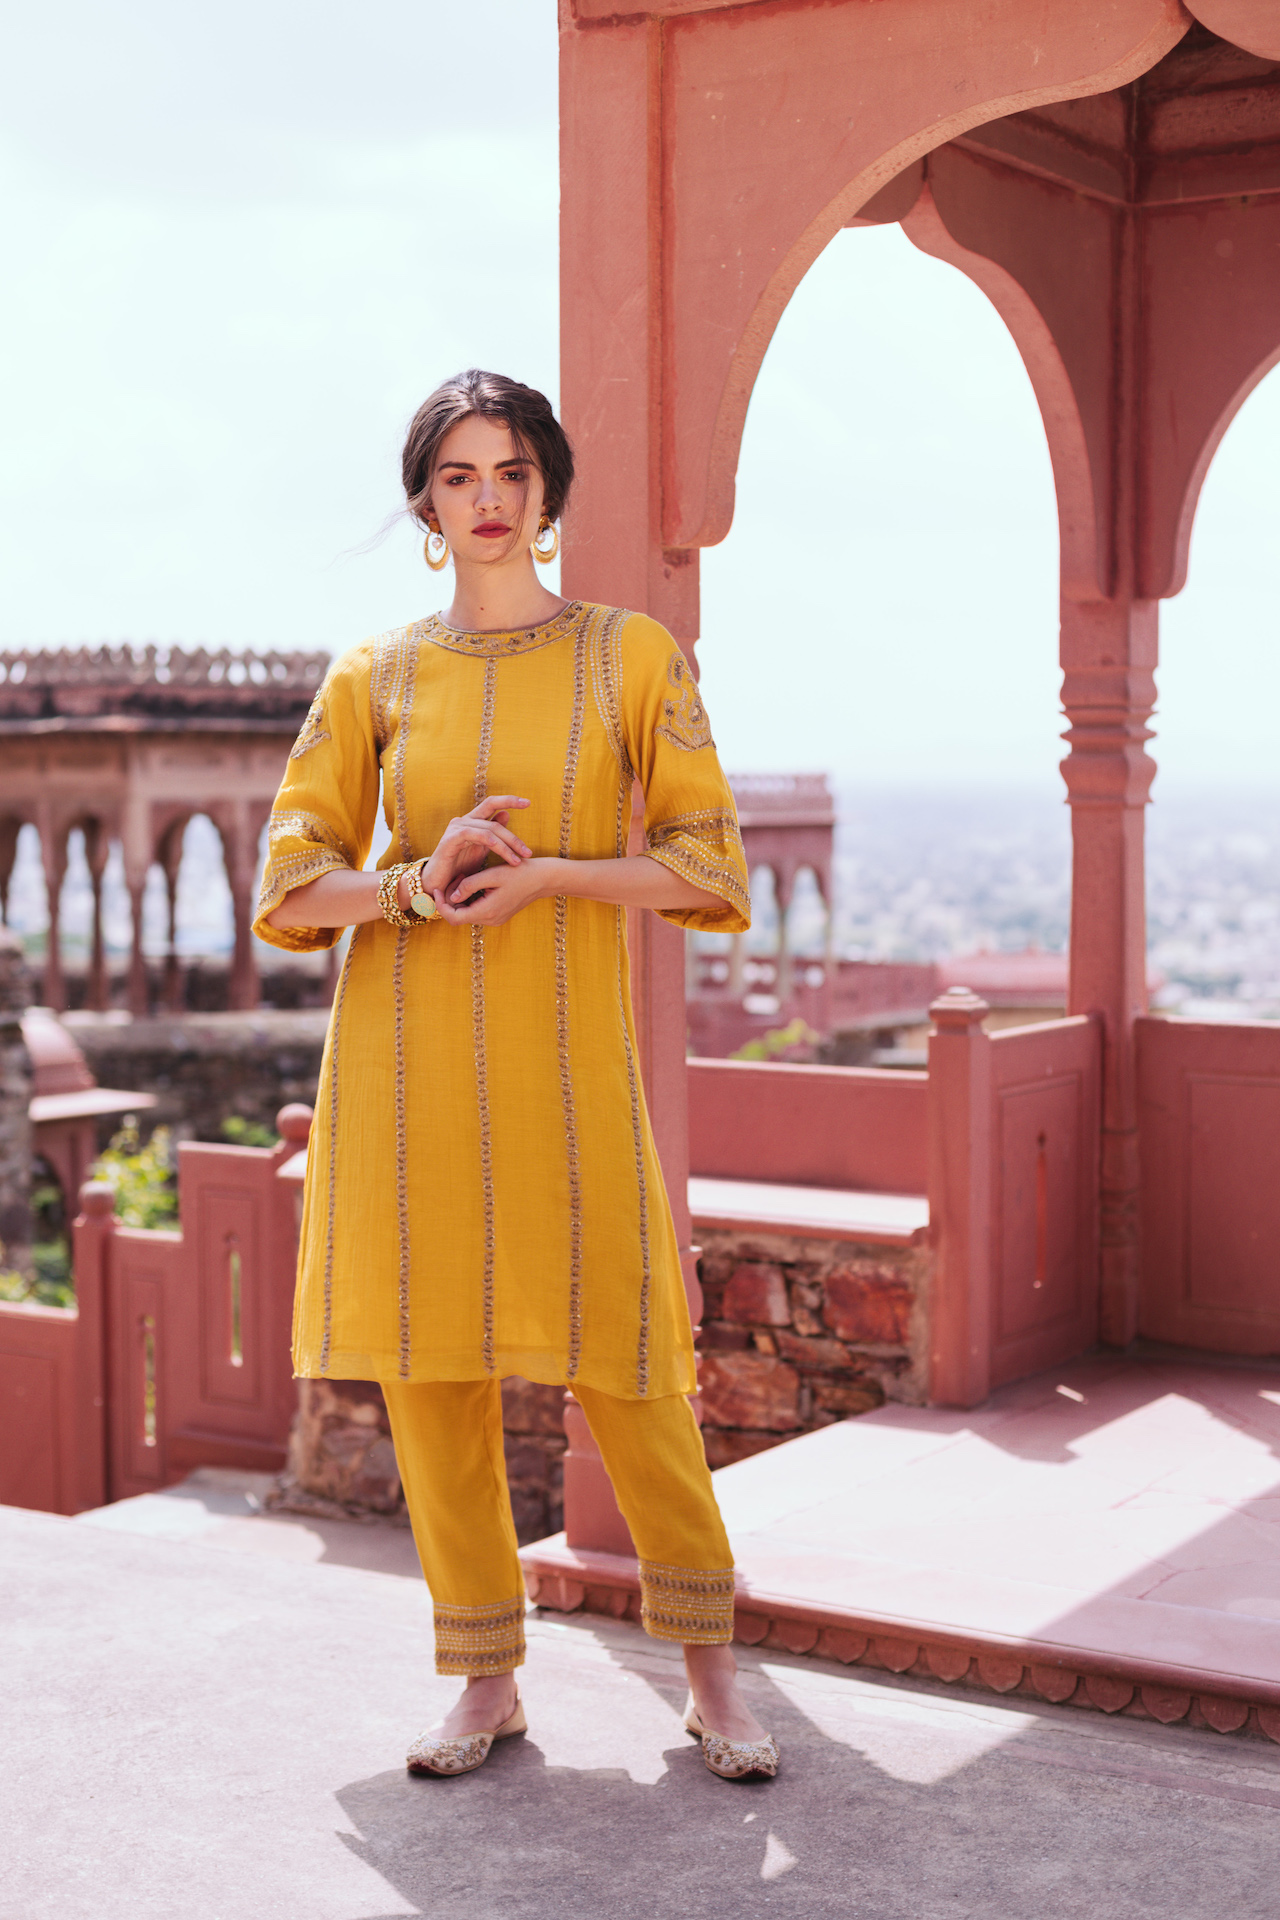 Quintessential set dipped in sunshine yellow and accentuated with golden threads